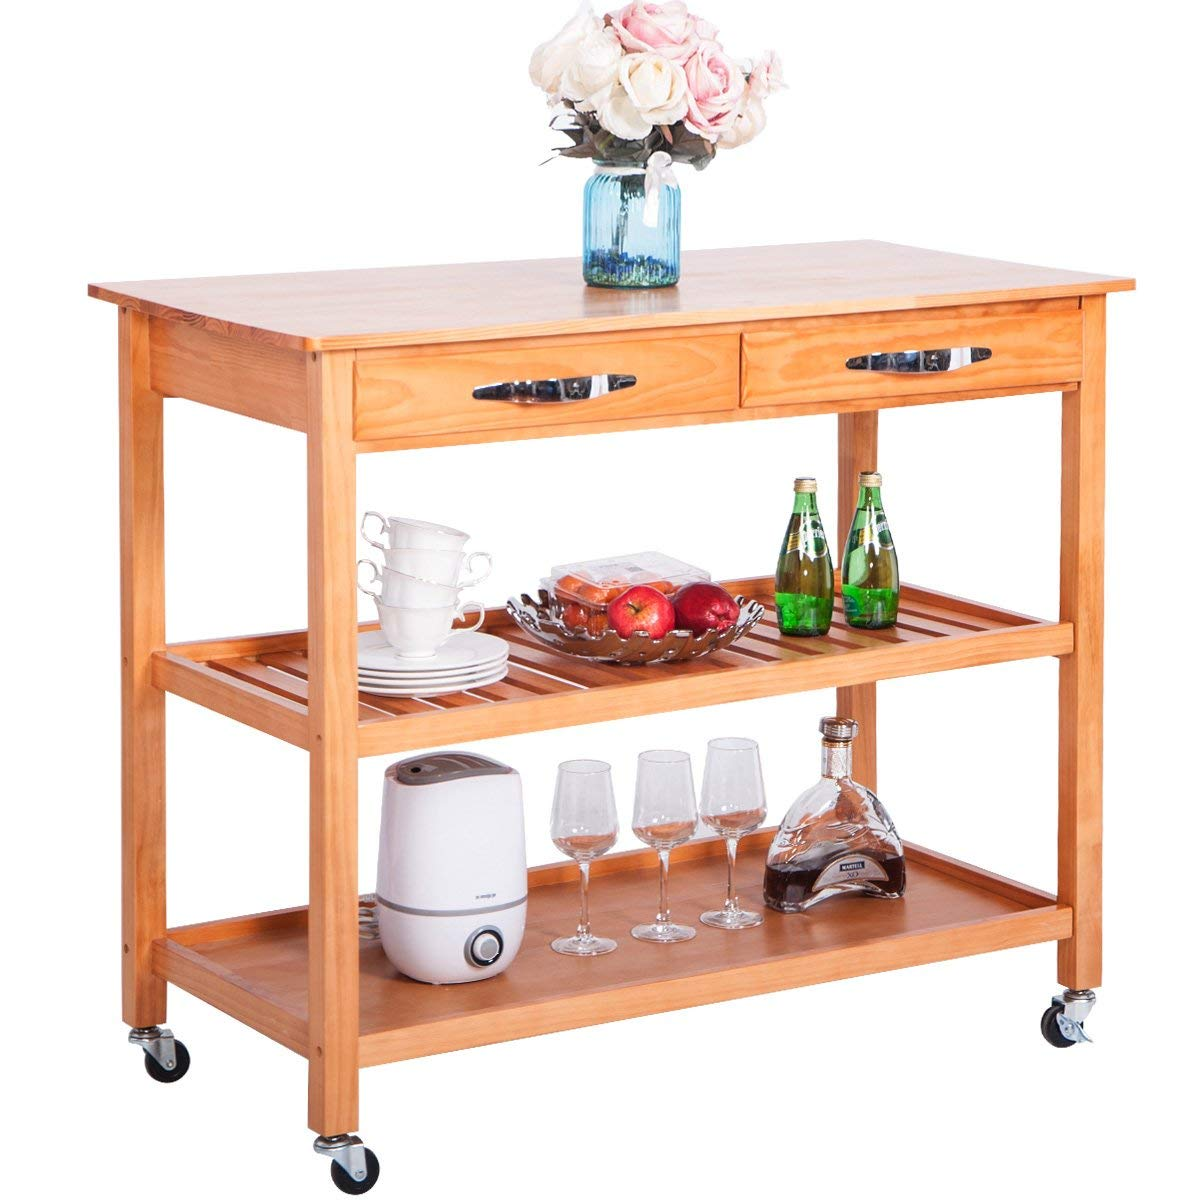 LZ LEISURE ZONE Harper&Bright Designs Kitchen Island Cart with Wheels  Drawers & Shelves Storage Shelf (Walnut)